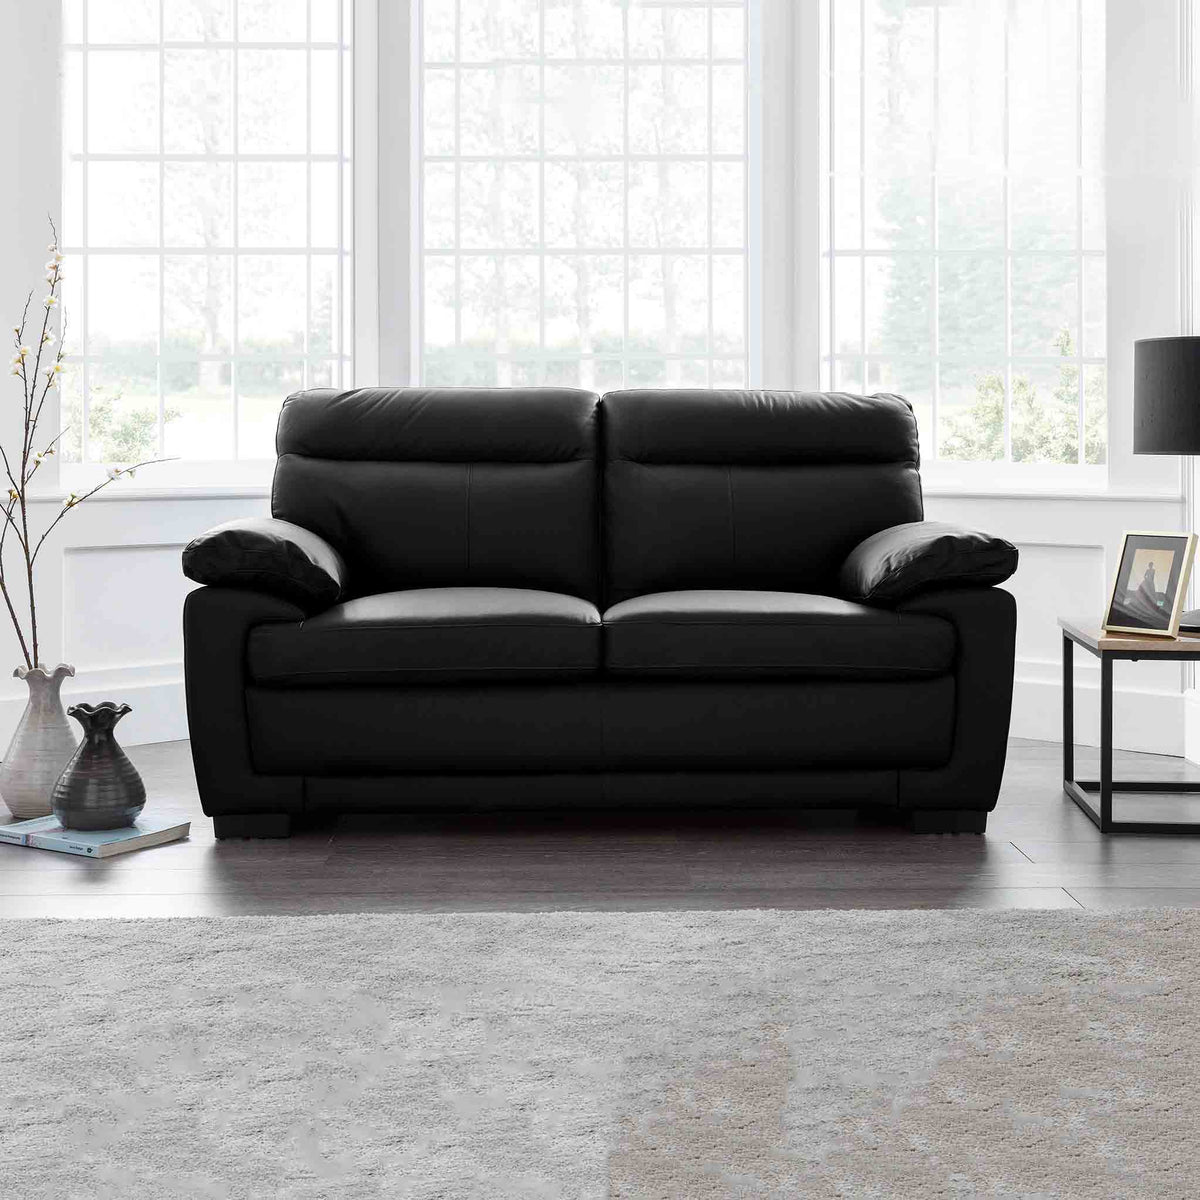 Hugo  Black 2 Seater Leather Sofa - Lifestyle